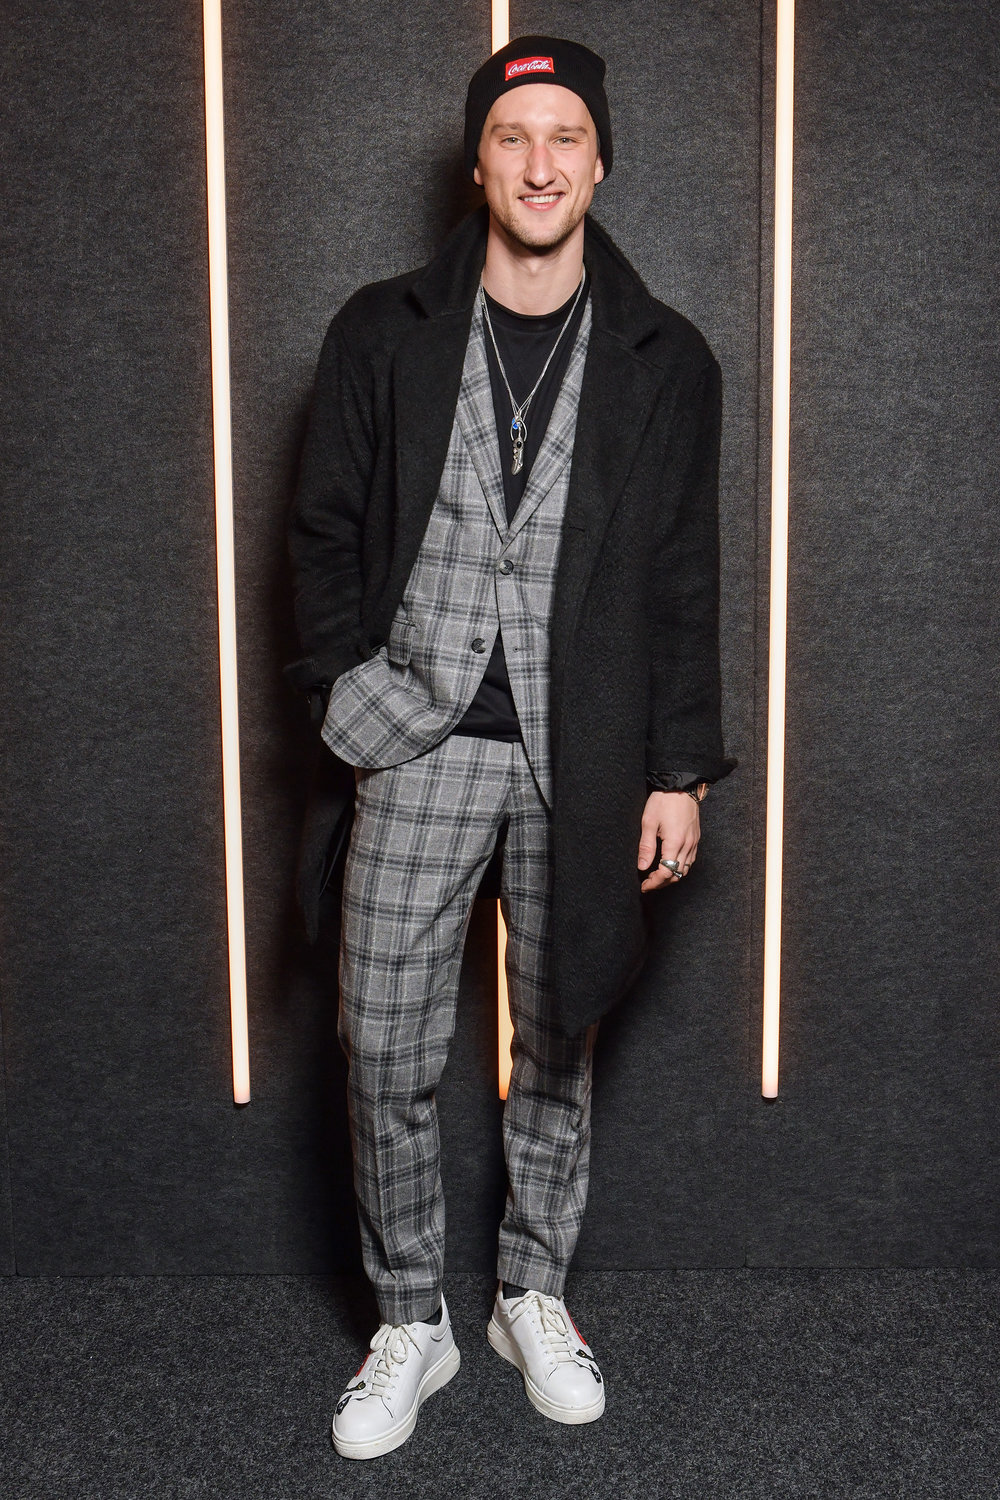 Marcel Floruss backstage at the BOSS Fall/Winter 2019 show at Basketball City during New York Fashion Week on Wednesday, February 13, in New York City. Photography, Courtesy of BOSS.